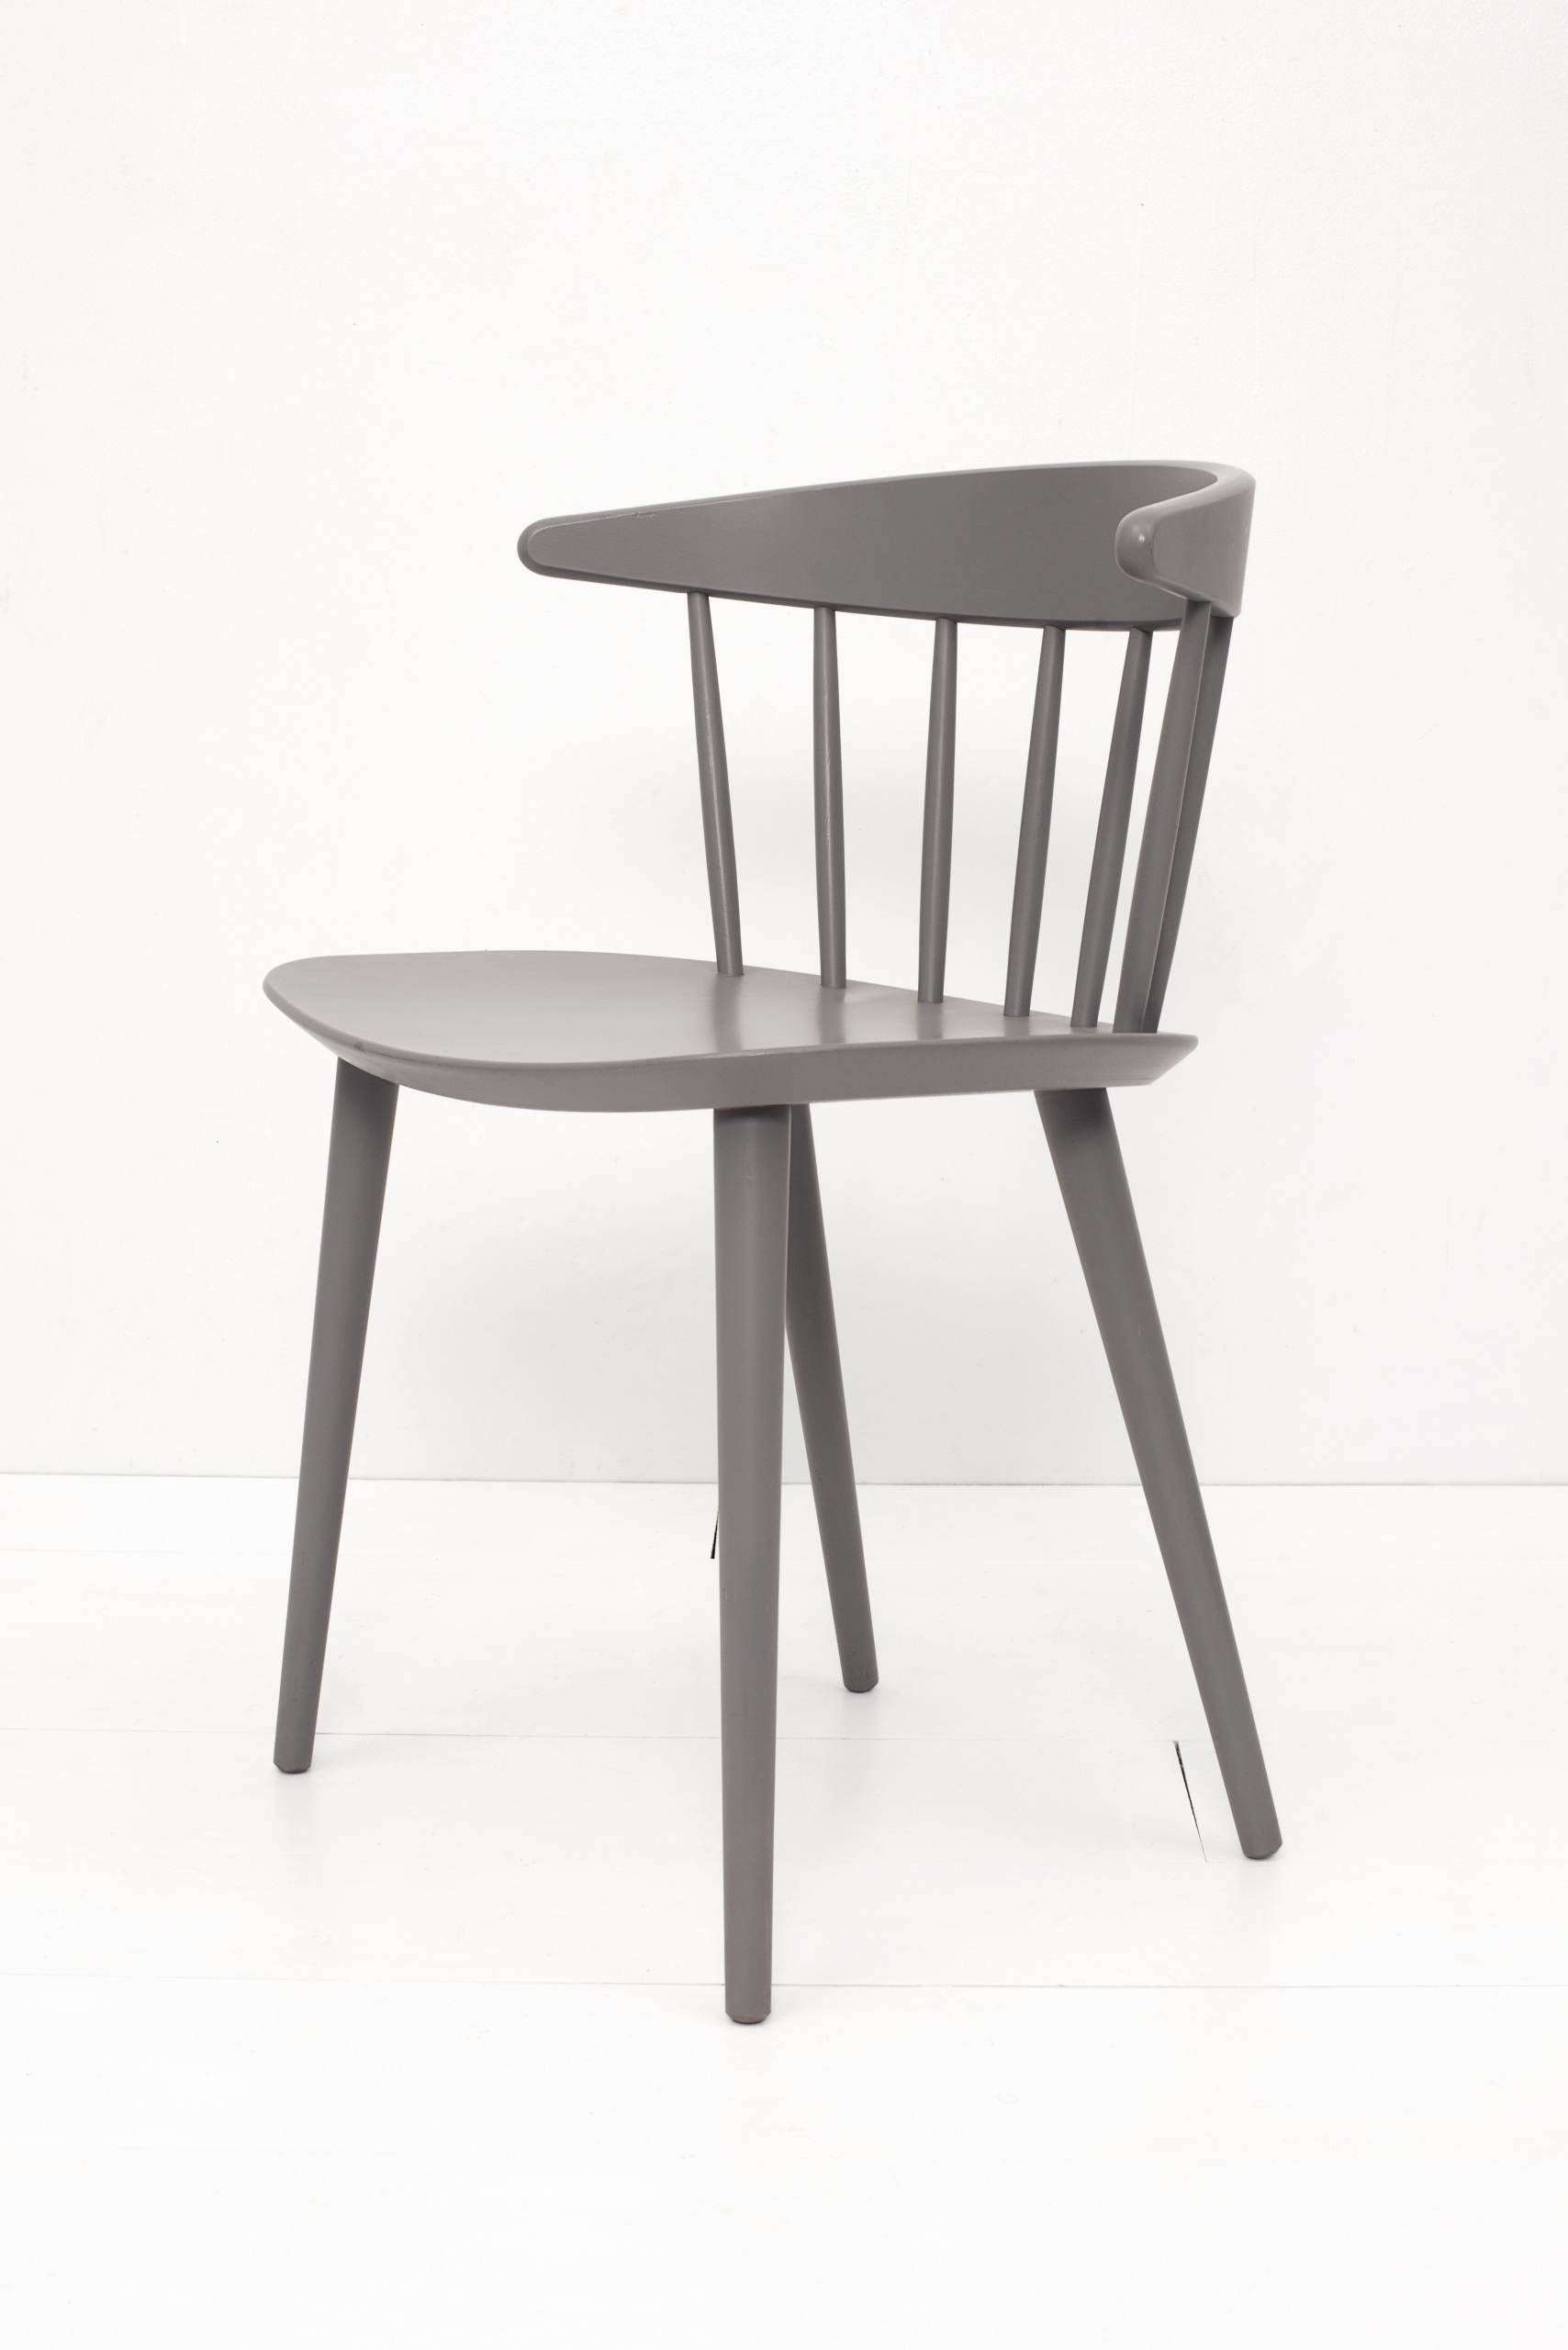 Hay design danish gray chair c089 Hay design